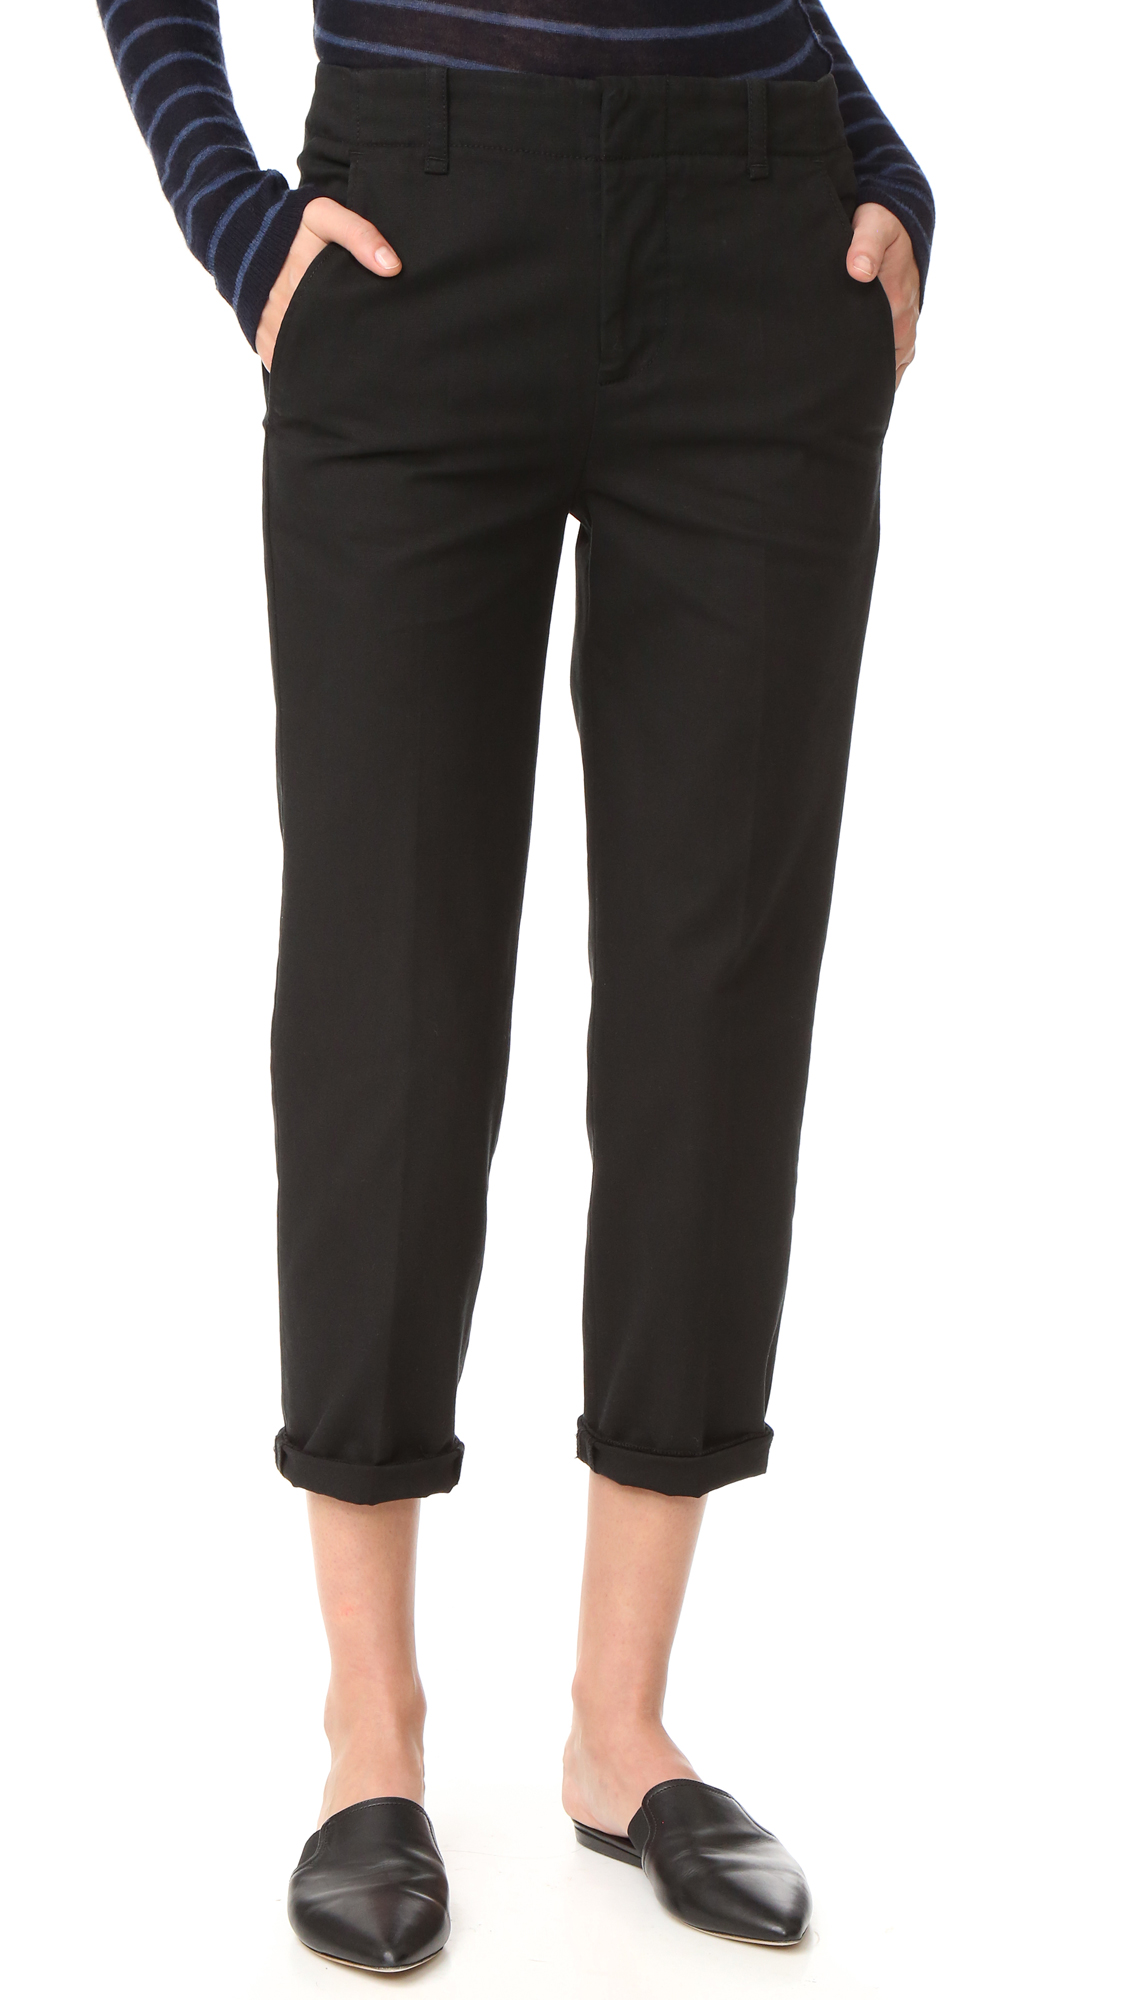 Vince Chino Pants - Black at Shopbop